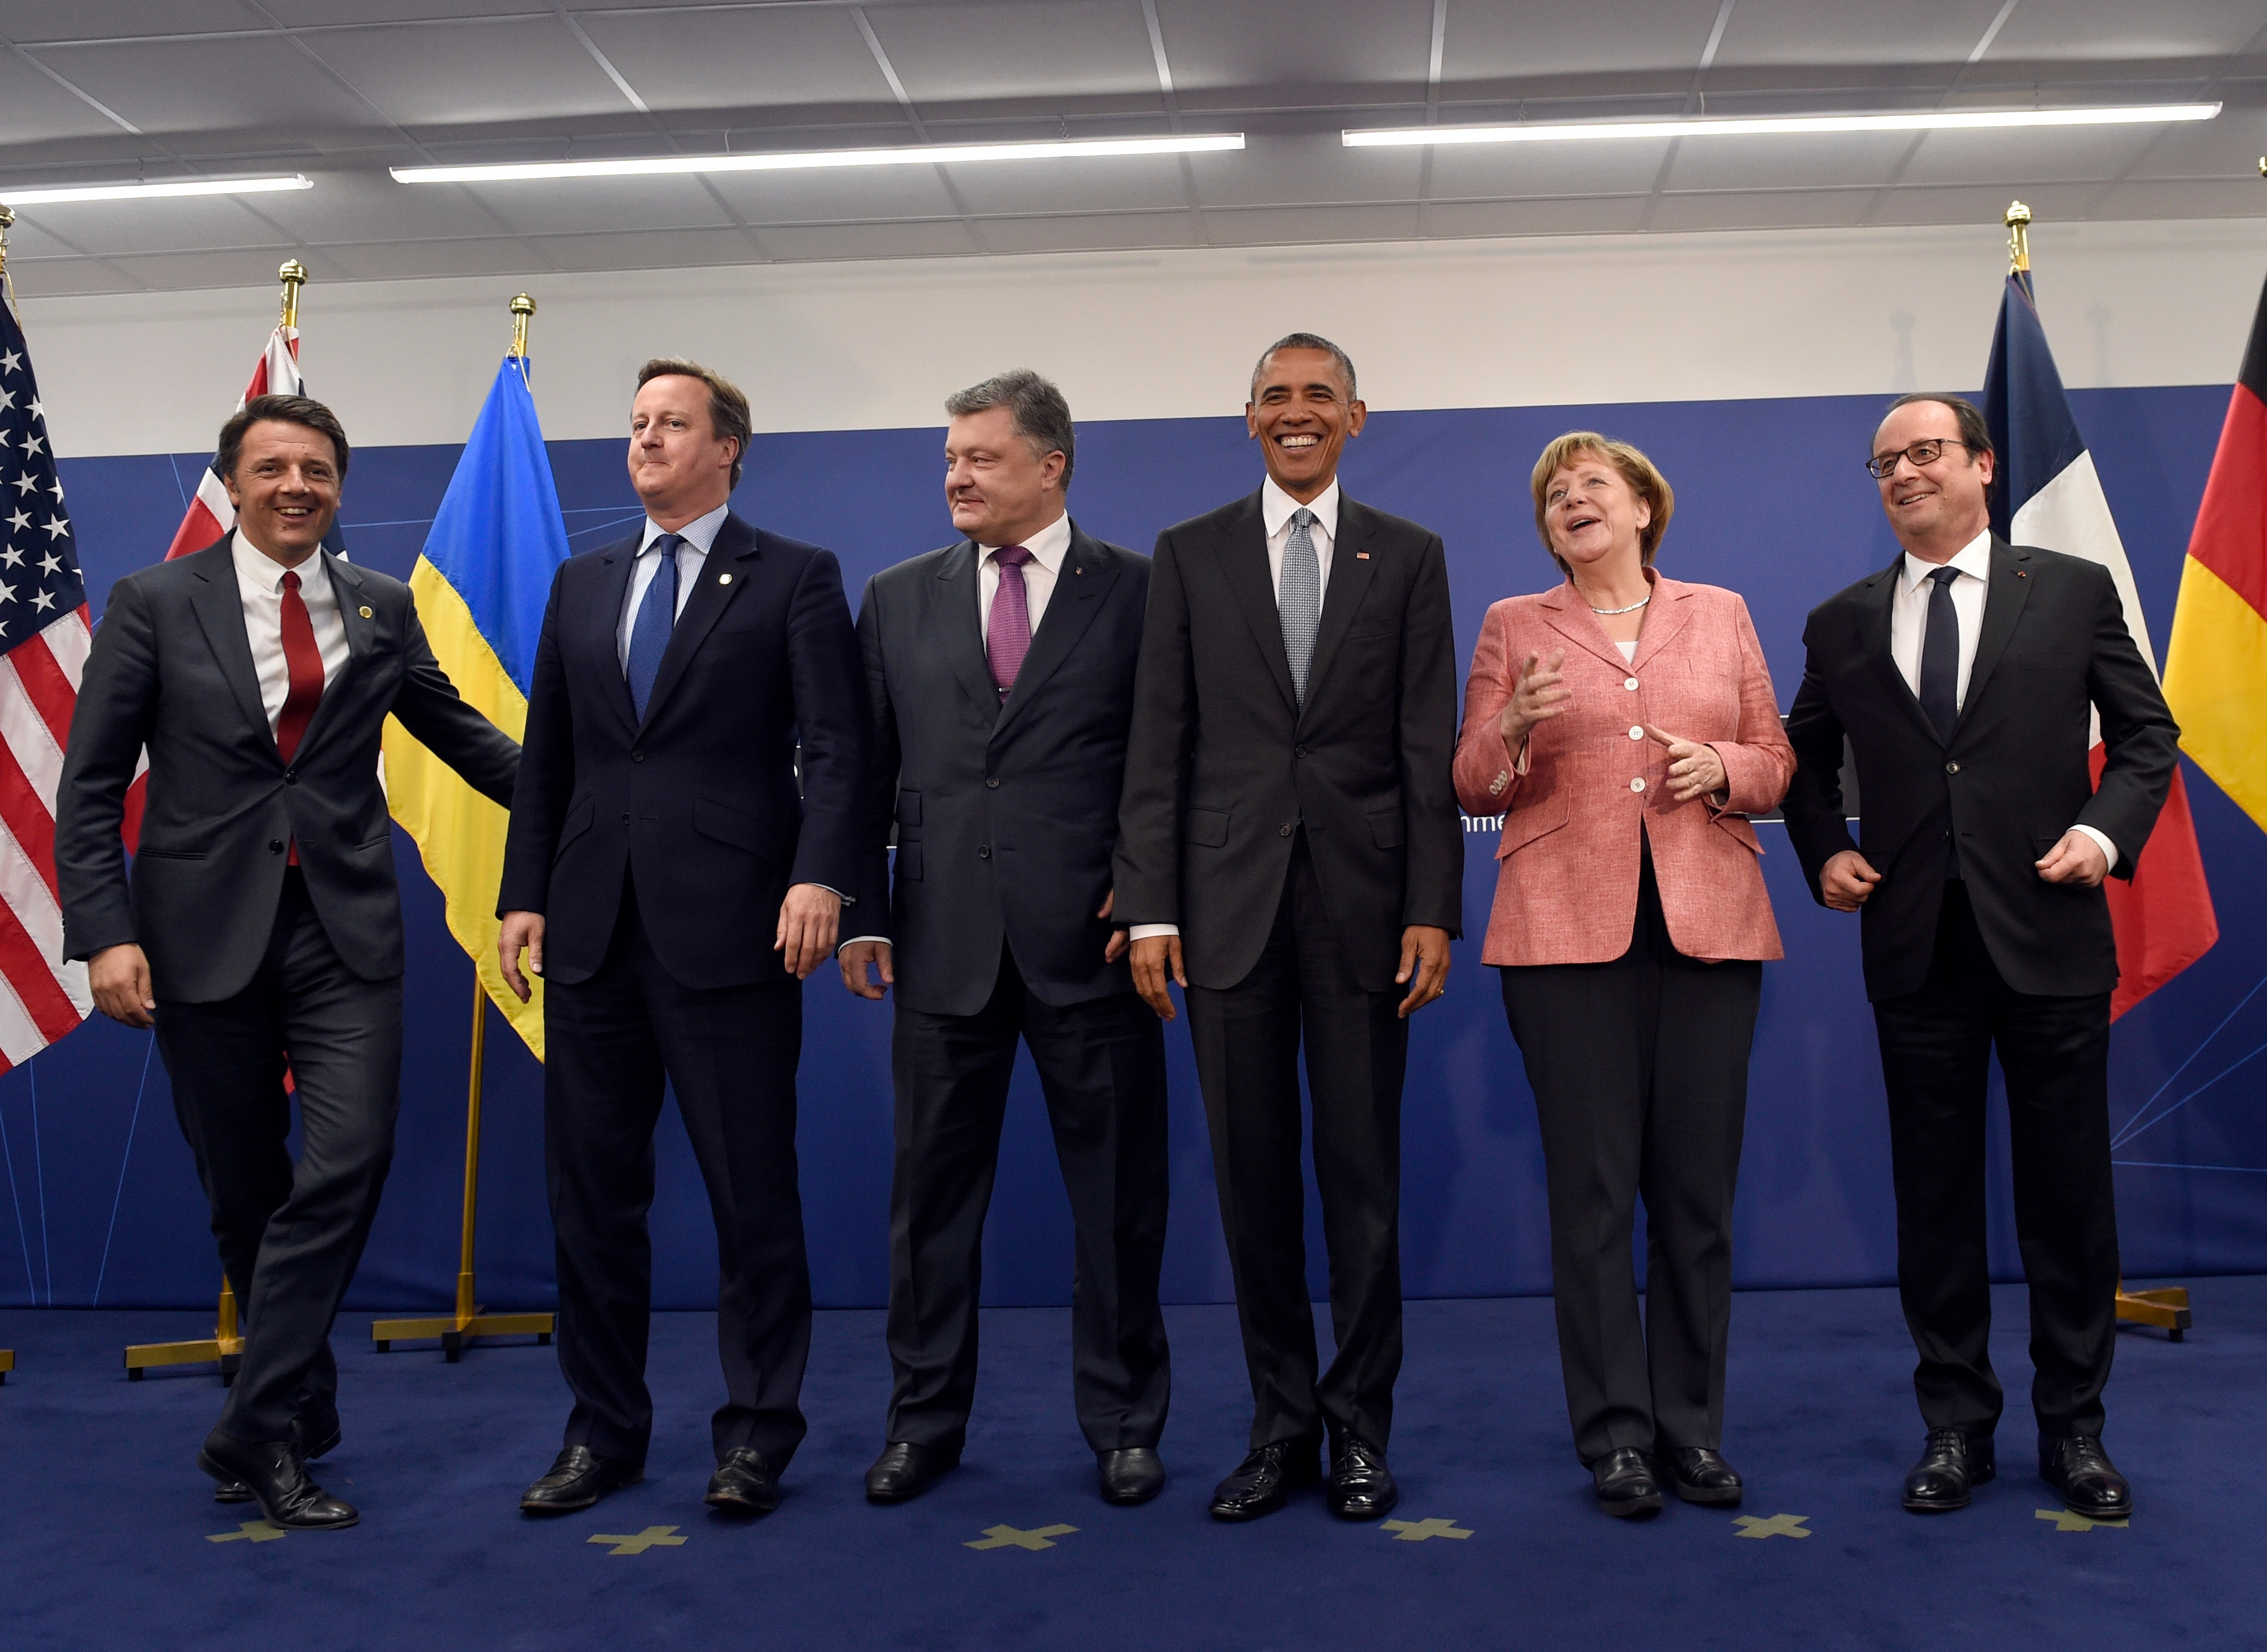 President Barack Obama poses for a photo with, from left, Italian Prime Minister Matteo Renzi, British Prime Minister David Cameron, Ukrainian President Petro Poroshenko, German Chancellor Angela Merkel, and French President Francois Hollande, at PGE National Stadium in Warsaw, Poland, Saturday, July 9, 2016. (AP Photo/Susan Walsh)